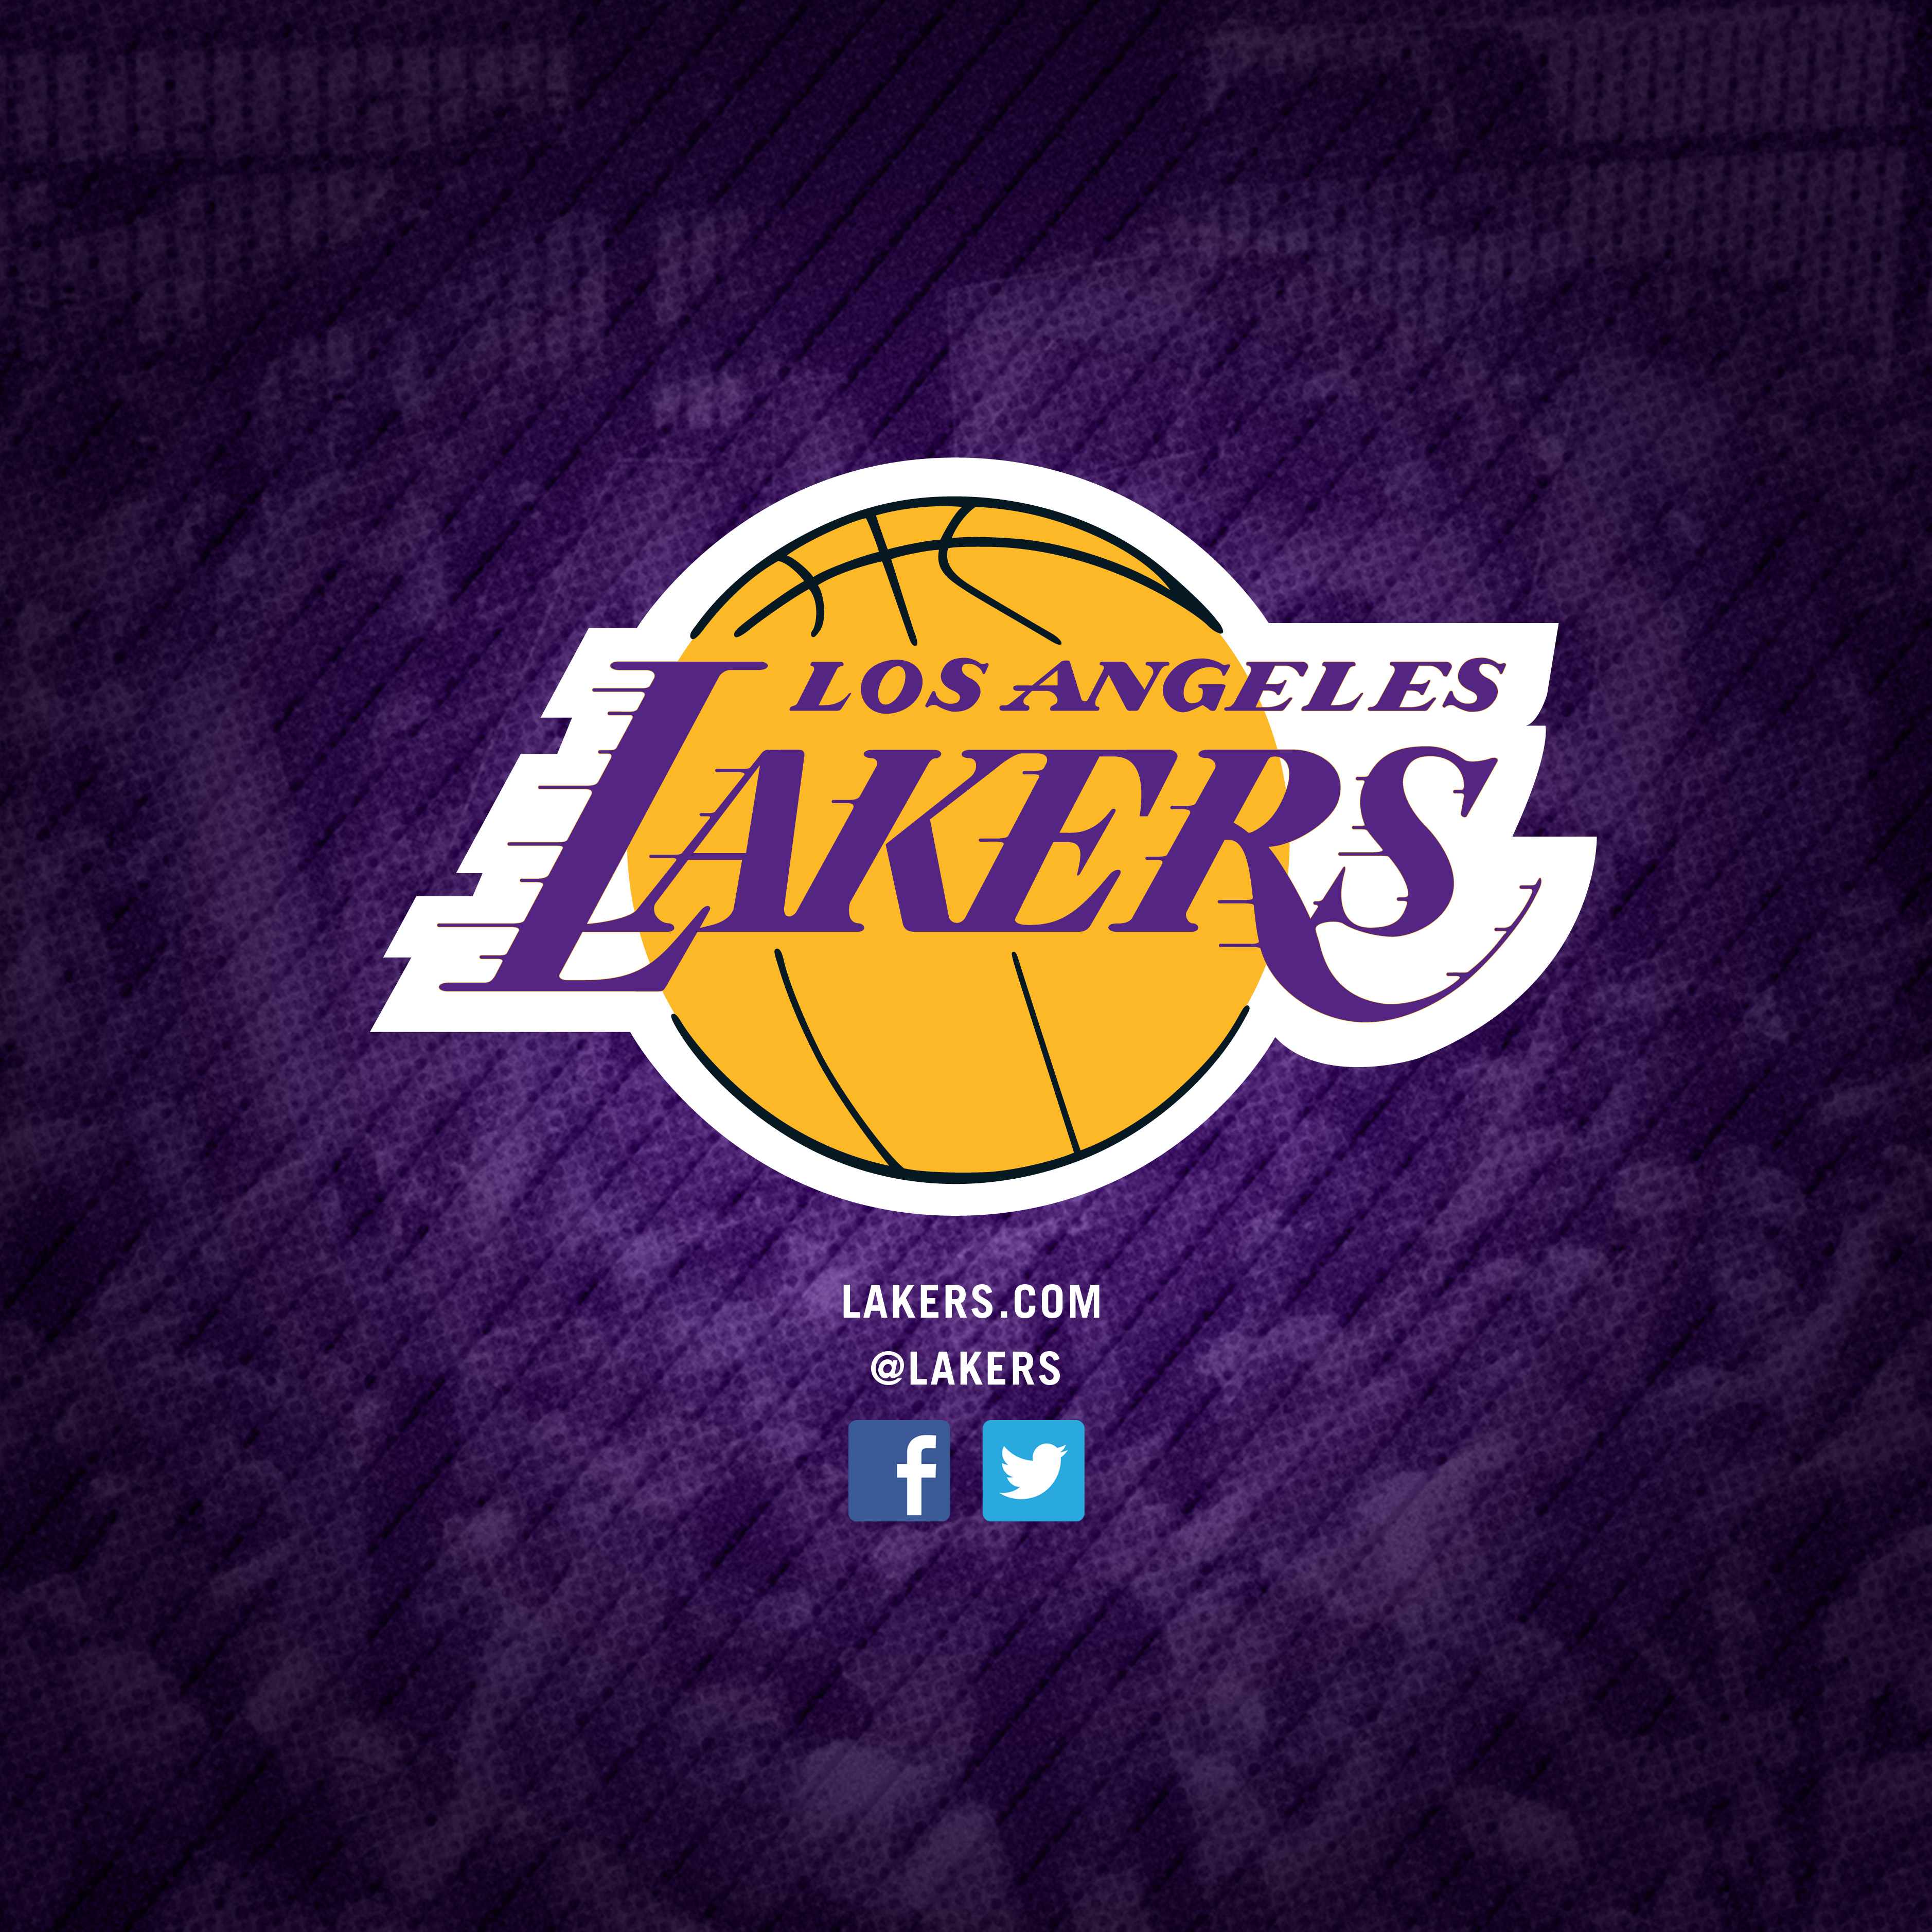 Lakers Mobile Wallpapers | Los Angeles Lakers